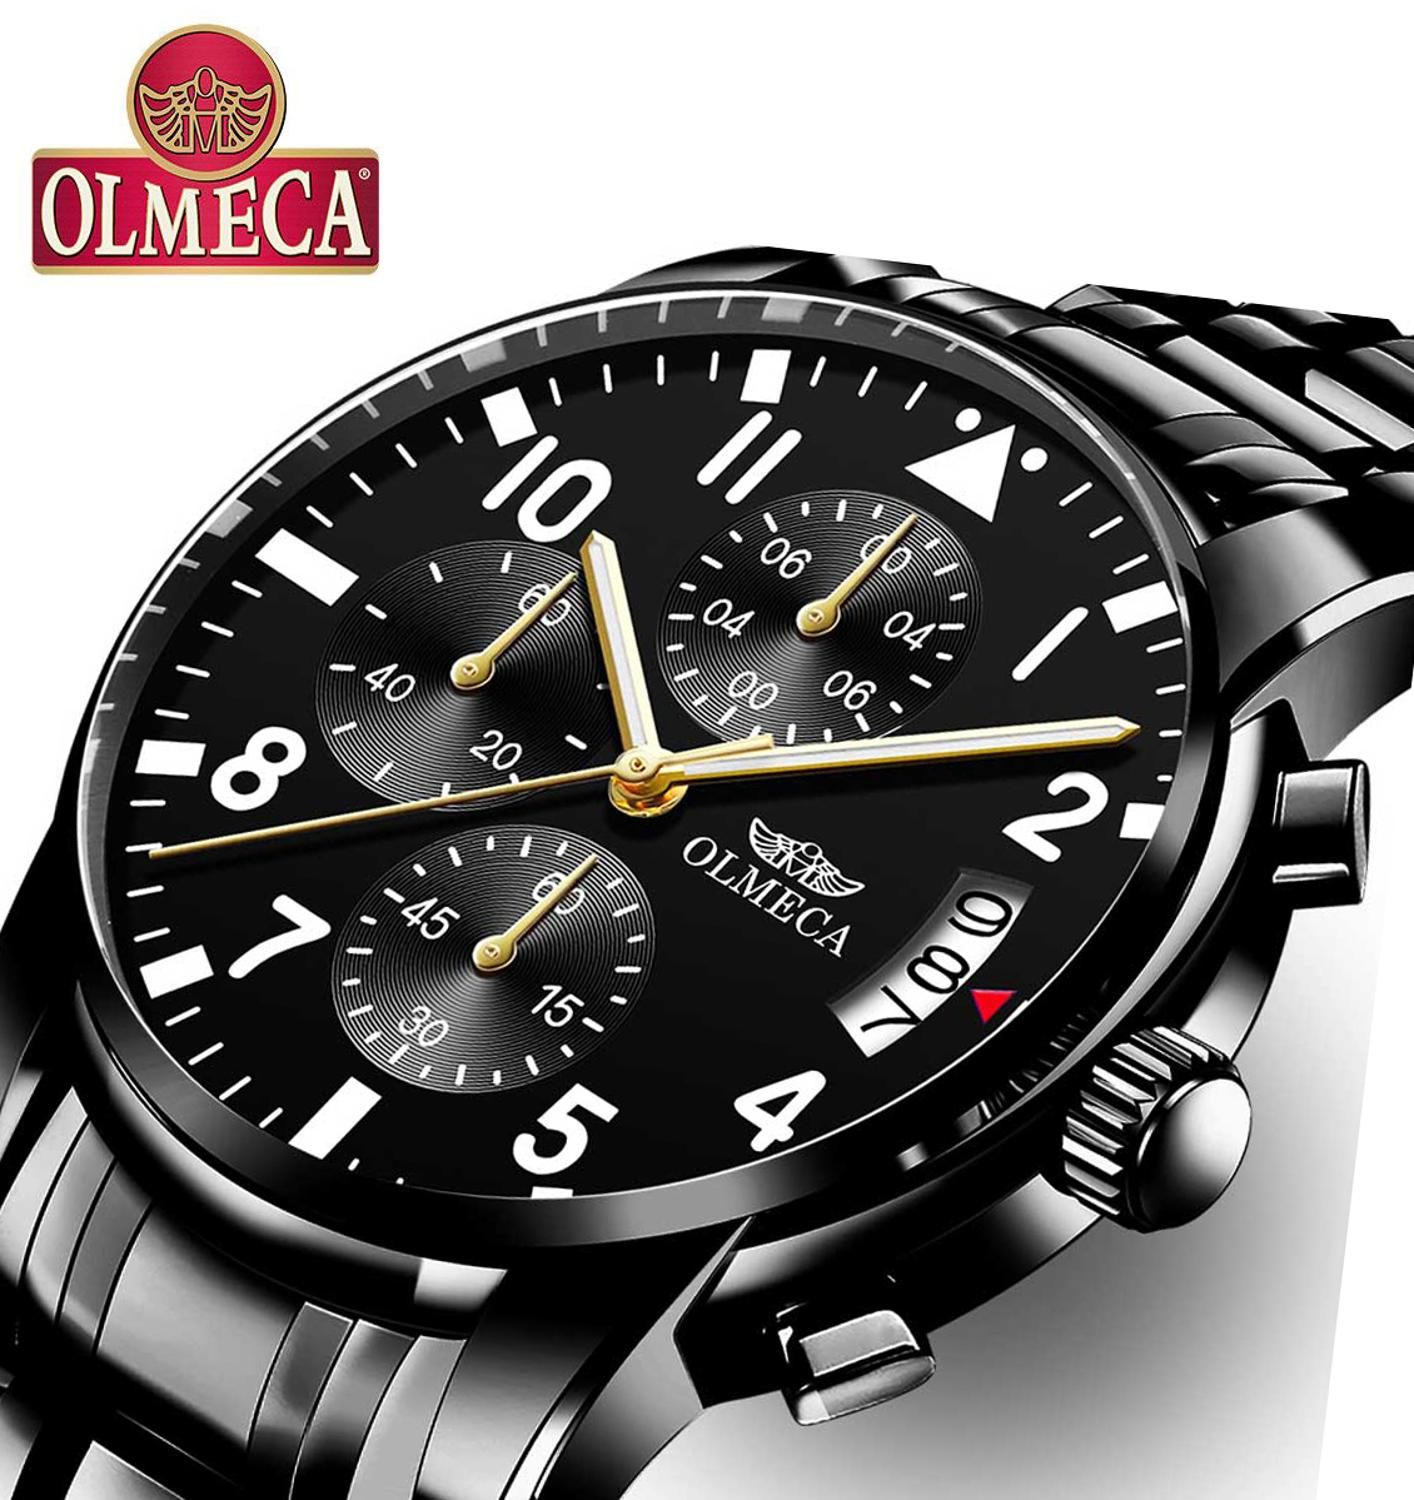 OLMECA Luxury Men Watch Relogio Masculino Waterproof Fashion Wrist Watch Luminous Hands Military Black Quartz Waterproof Watches